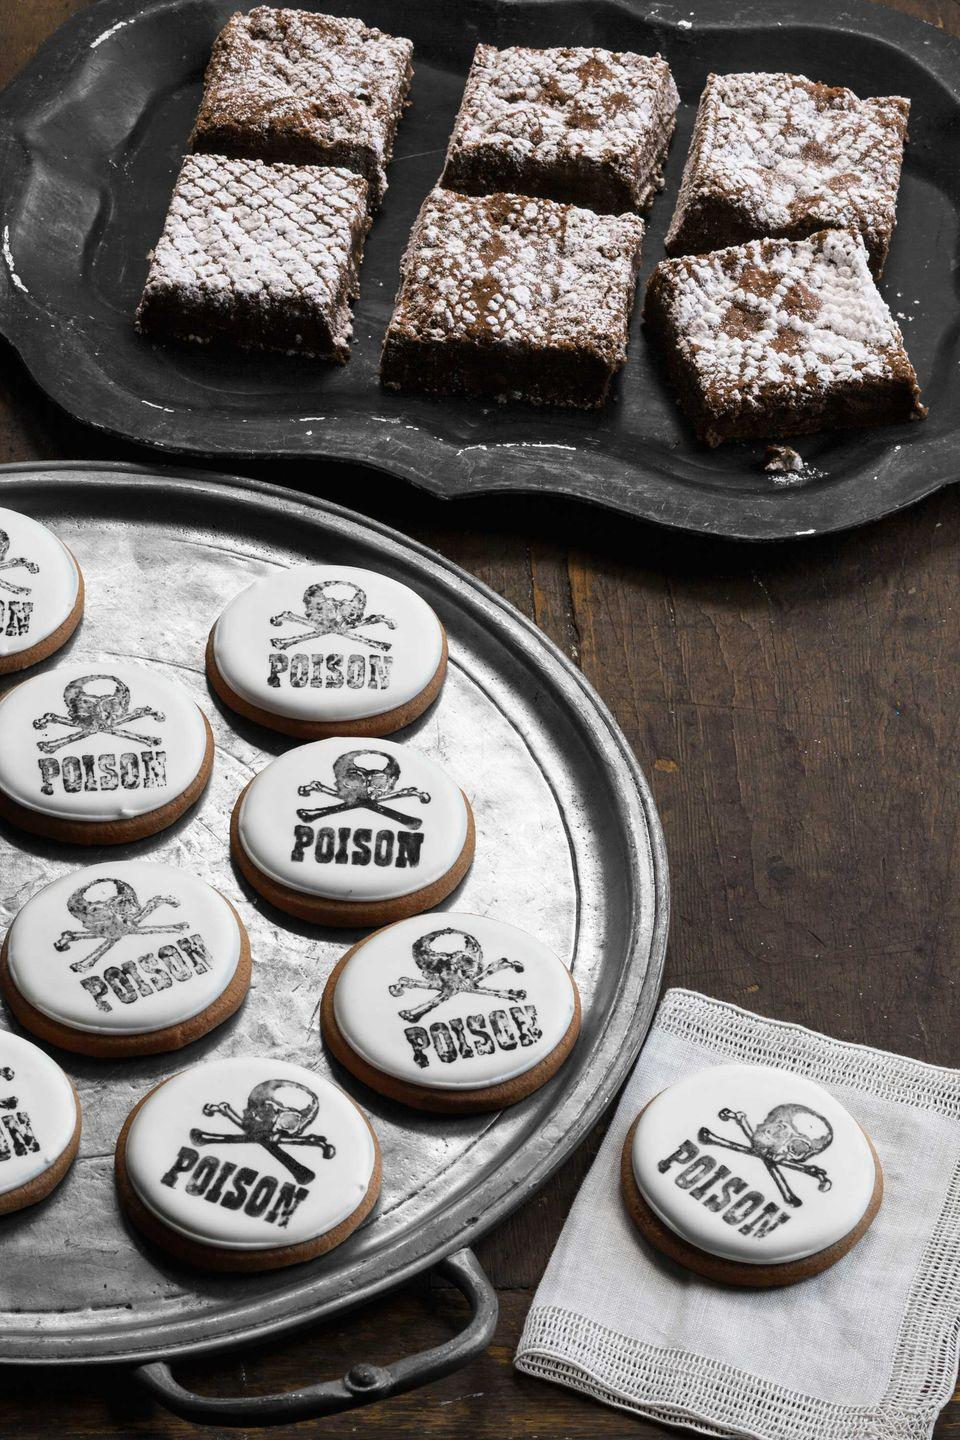 """<p>Tarting up these desserts is frighteningly simple. To decorate brownies, lay a swatch of lace on one of the treats. Sift confectioners' sugar over the top, then carefully remove the lace; repeat for remaining brownies. </p><p>For the """"poison"""" cookies, frost sugar cookies with white royal icing, allowing it to set overnight. Next, put a small amount of black gel paste in a shallow dish, and lay two stacked paper towels atop the gel paste. Press a skull-and-crossbones rubber stamp onto the towels and then onto one iced cookie; repeat the process for your entire batch.</p><p><strong><a href=""""https://www.countryliving.com/food-drinks/recipes/a34963/basic-sugar-cookie-dough-recipe-wdy1214/"""" rel=""""nofollow noopener"""" target=""""_blank"""" data-ylk=""""slk:Get a basic sugar cookie recipe"""" class=""""link rapid-noclick-resp"""">Get a basic sugar cookie recipe</a>.</strong> </p><p><strong><a href=""""https://www.countryliving.com/food-drinks/recipes/a1757/royal-icing-3883/"""" rel=""""nofollow noopener"""" target=""""_blank"""" data-ylk=""""slk:Get the recipe for royal icing"""" class=""""link rapid-noclick-resp"""">Get the recipe for royal icing</a>.</strong></p>"""